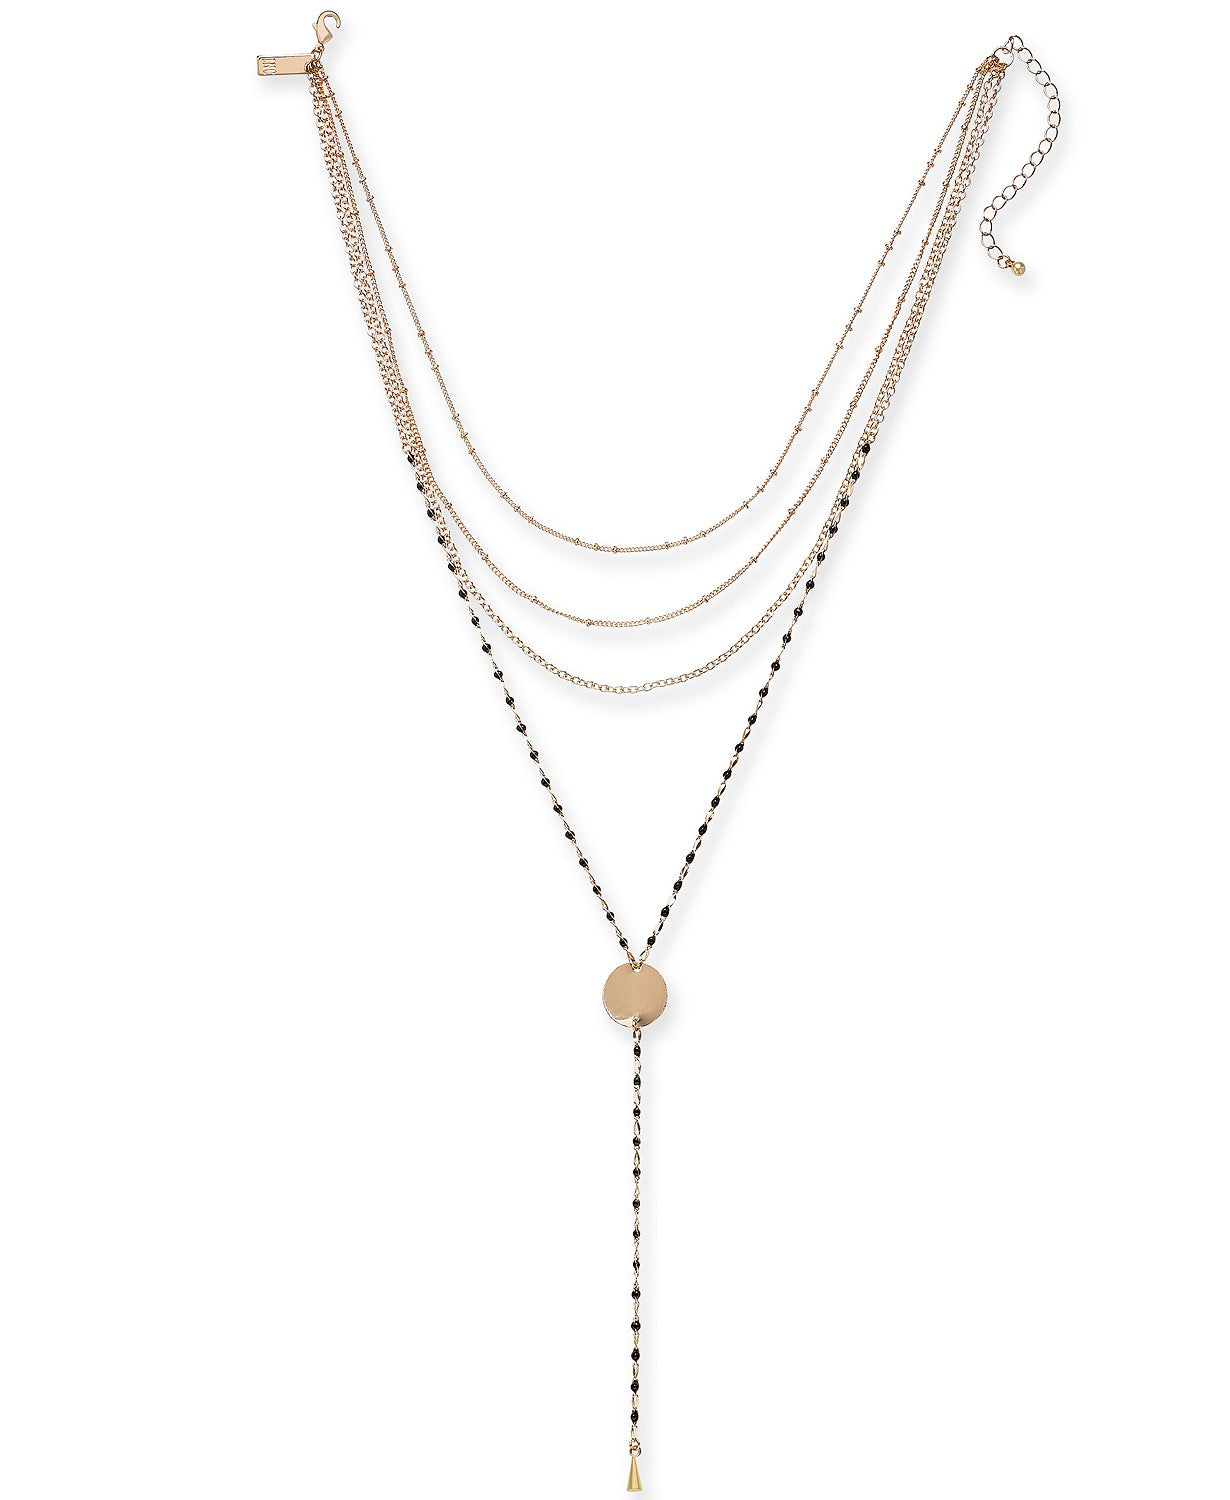 "I.N.C. Gold-Tone & Colored Bead Layered Lariat Necklace, 14"" + 3"" extender"